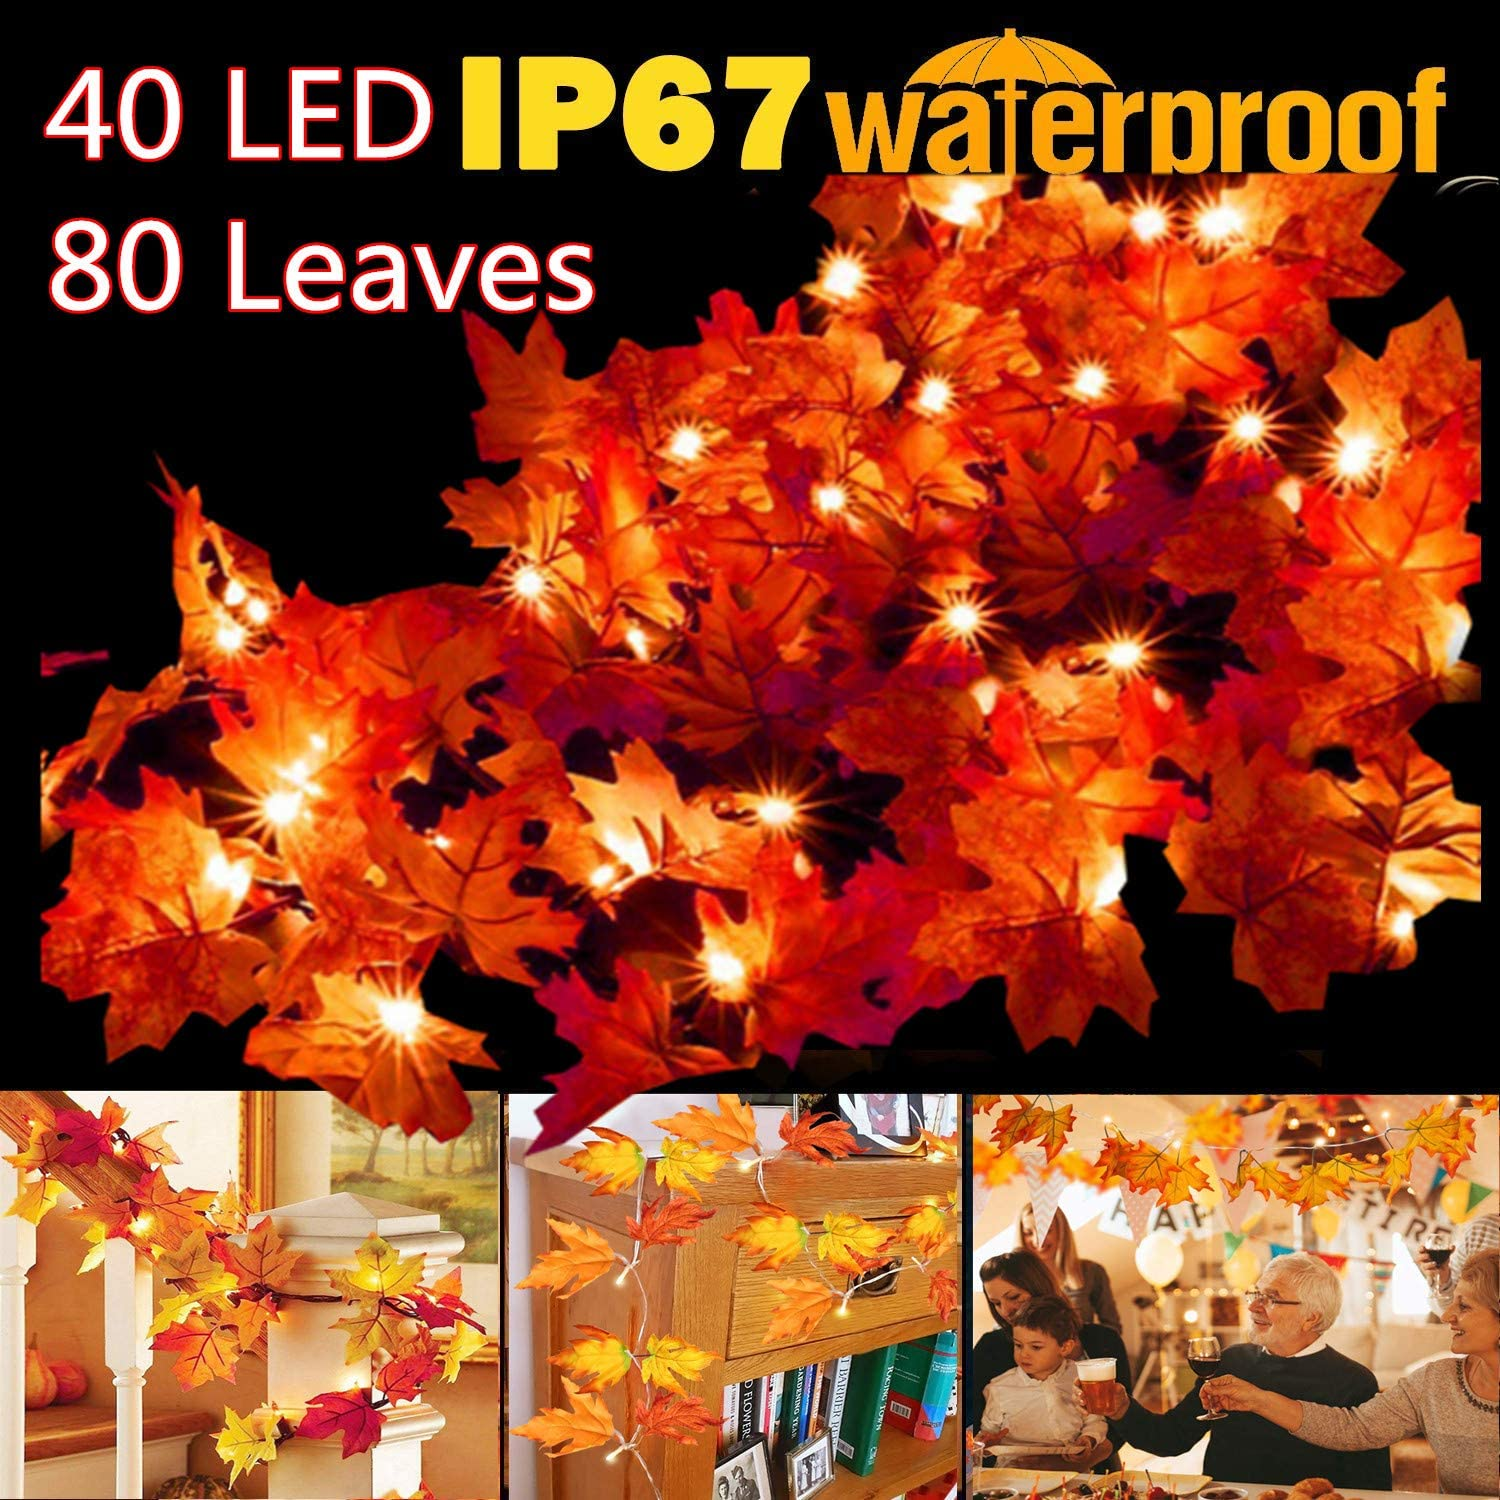 Thanksgiving Decorations Lighted Fall Garland, 14.7 Feet 40 LED 80 Leaves Thanksgiving Decor String Lights for Indoor Outdoor Fall decor, Fall decorations